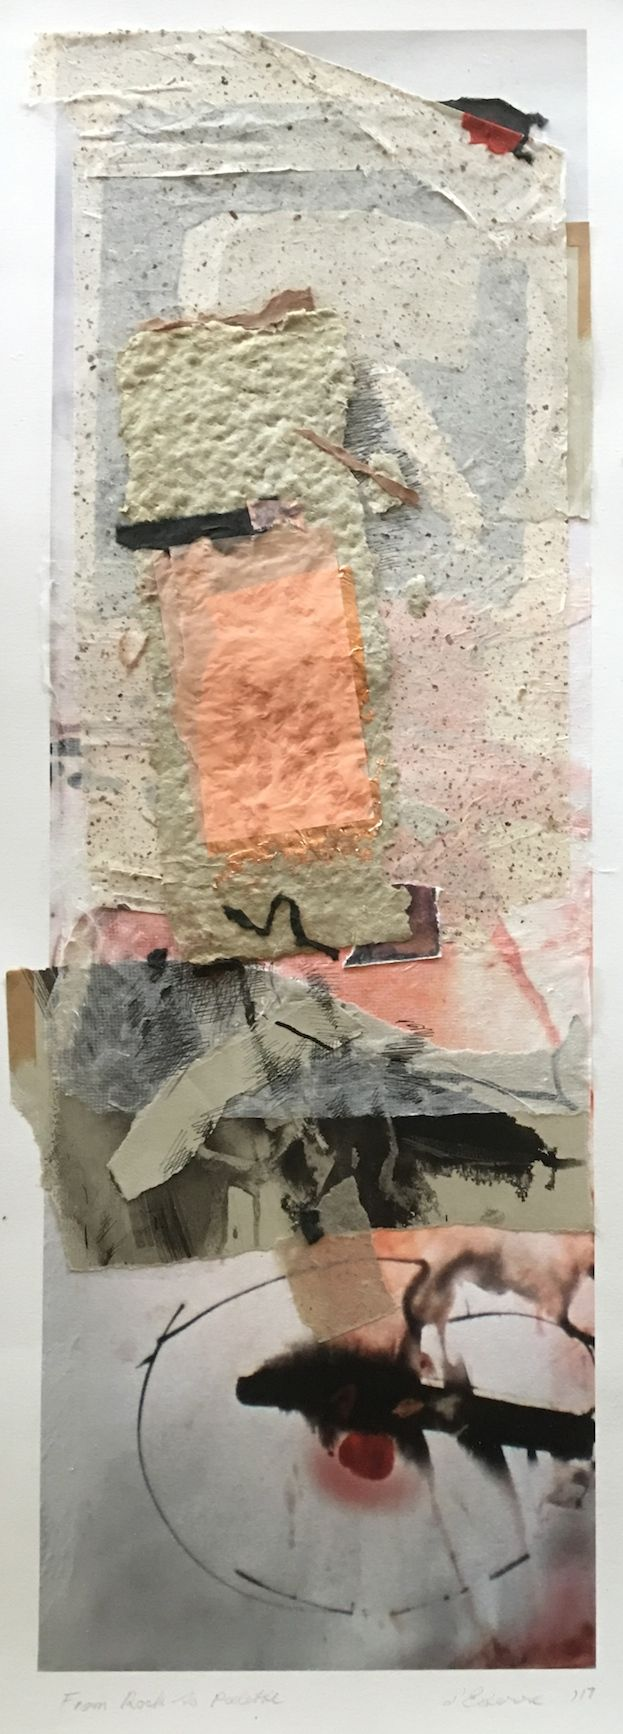 Elaine d'Esterre - From Rock to Palette, 2017, digital print and collage, 75x25 cm. Also ART BLOG at http://elainedesterreart.com/ and http://www.facebook.com/elainedesterreart/ and http://instagram.com/desterreart/